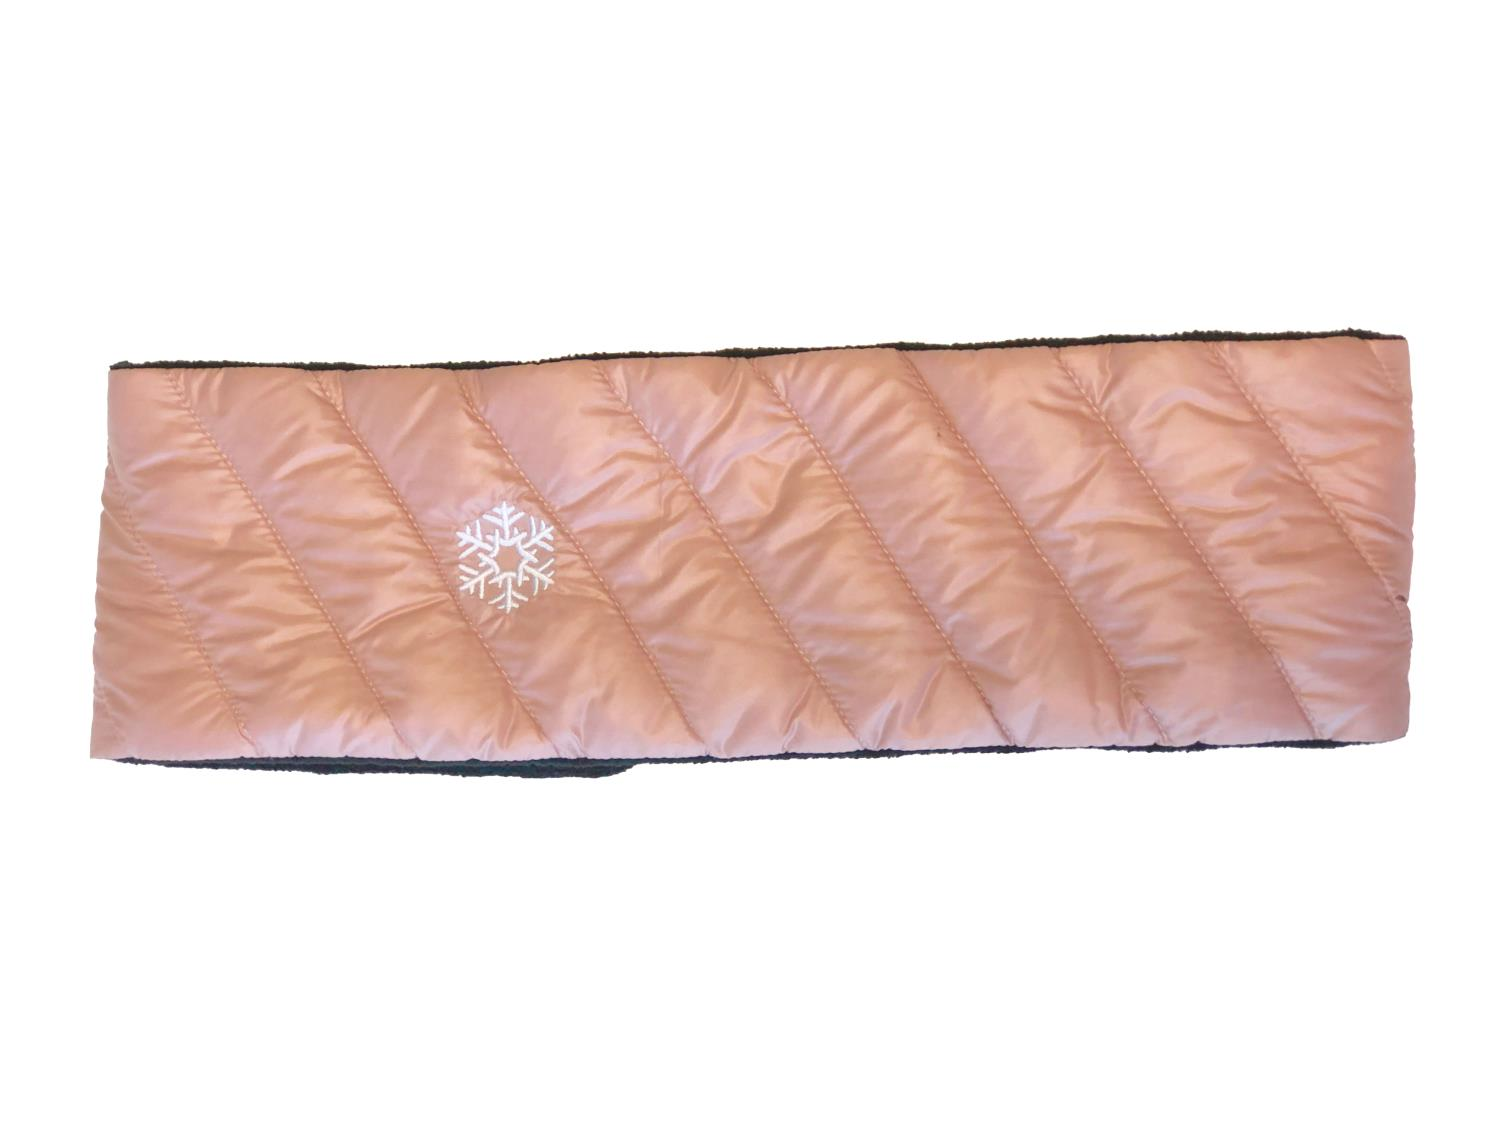 Thermopoc  Pannebånd i dun soft pink 85x660mm